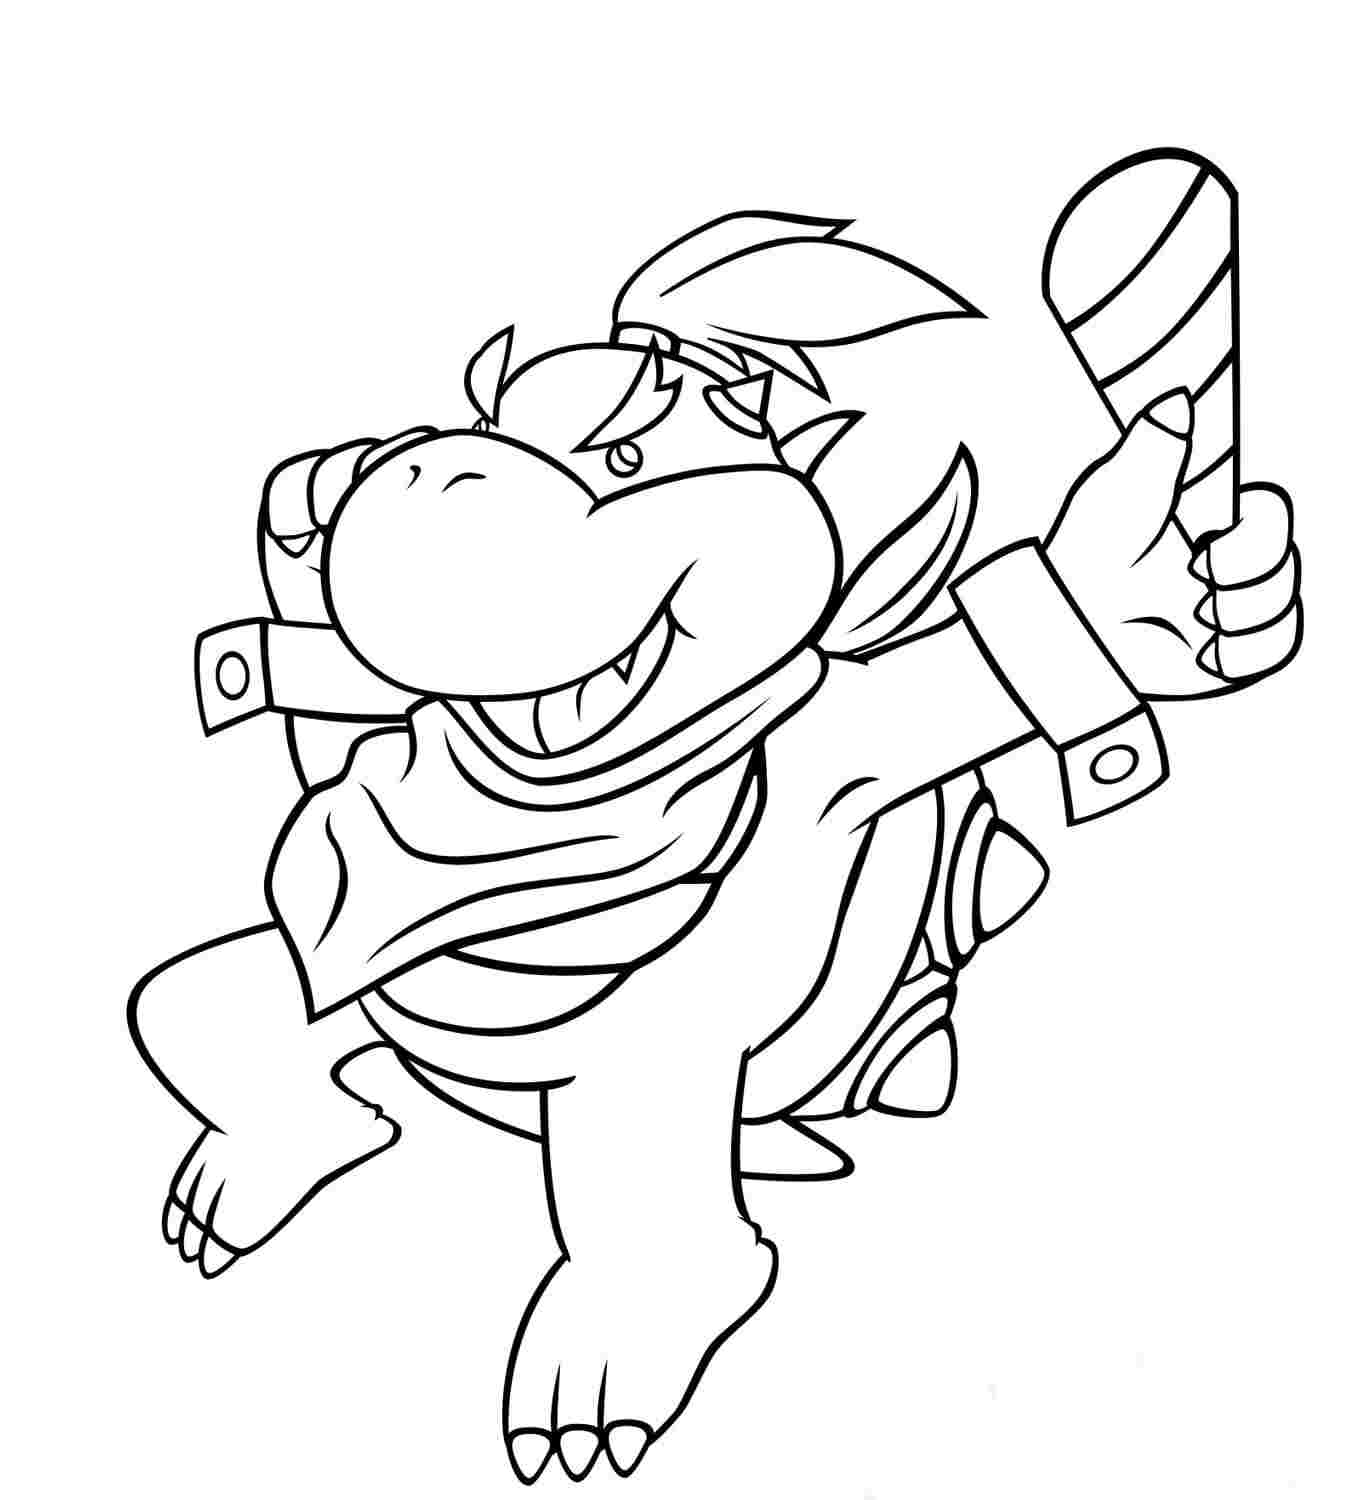 Bowser Jr. is holding torch Coloring Page